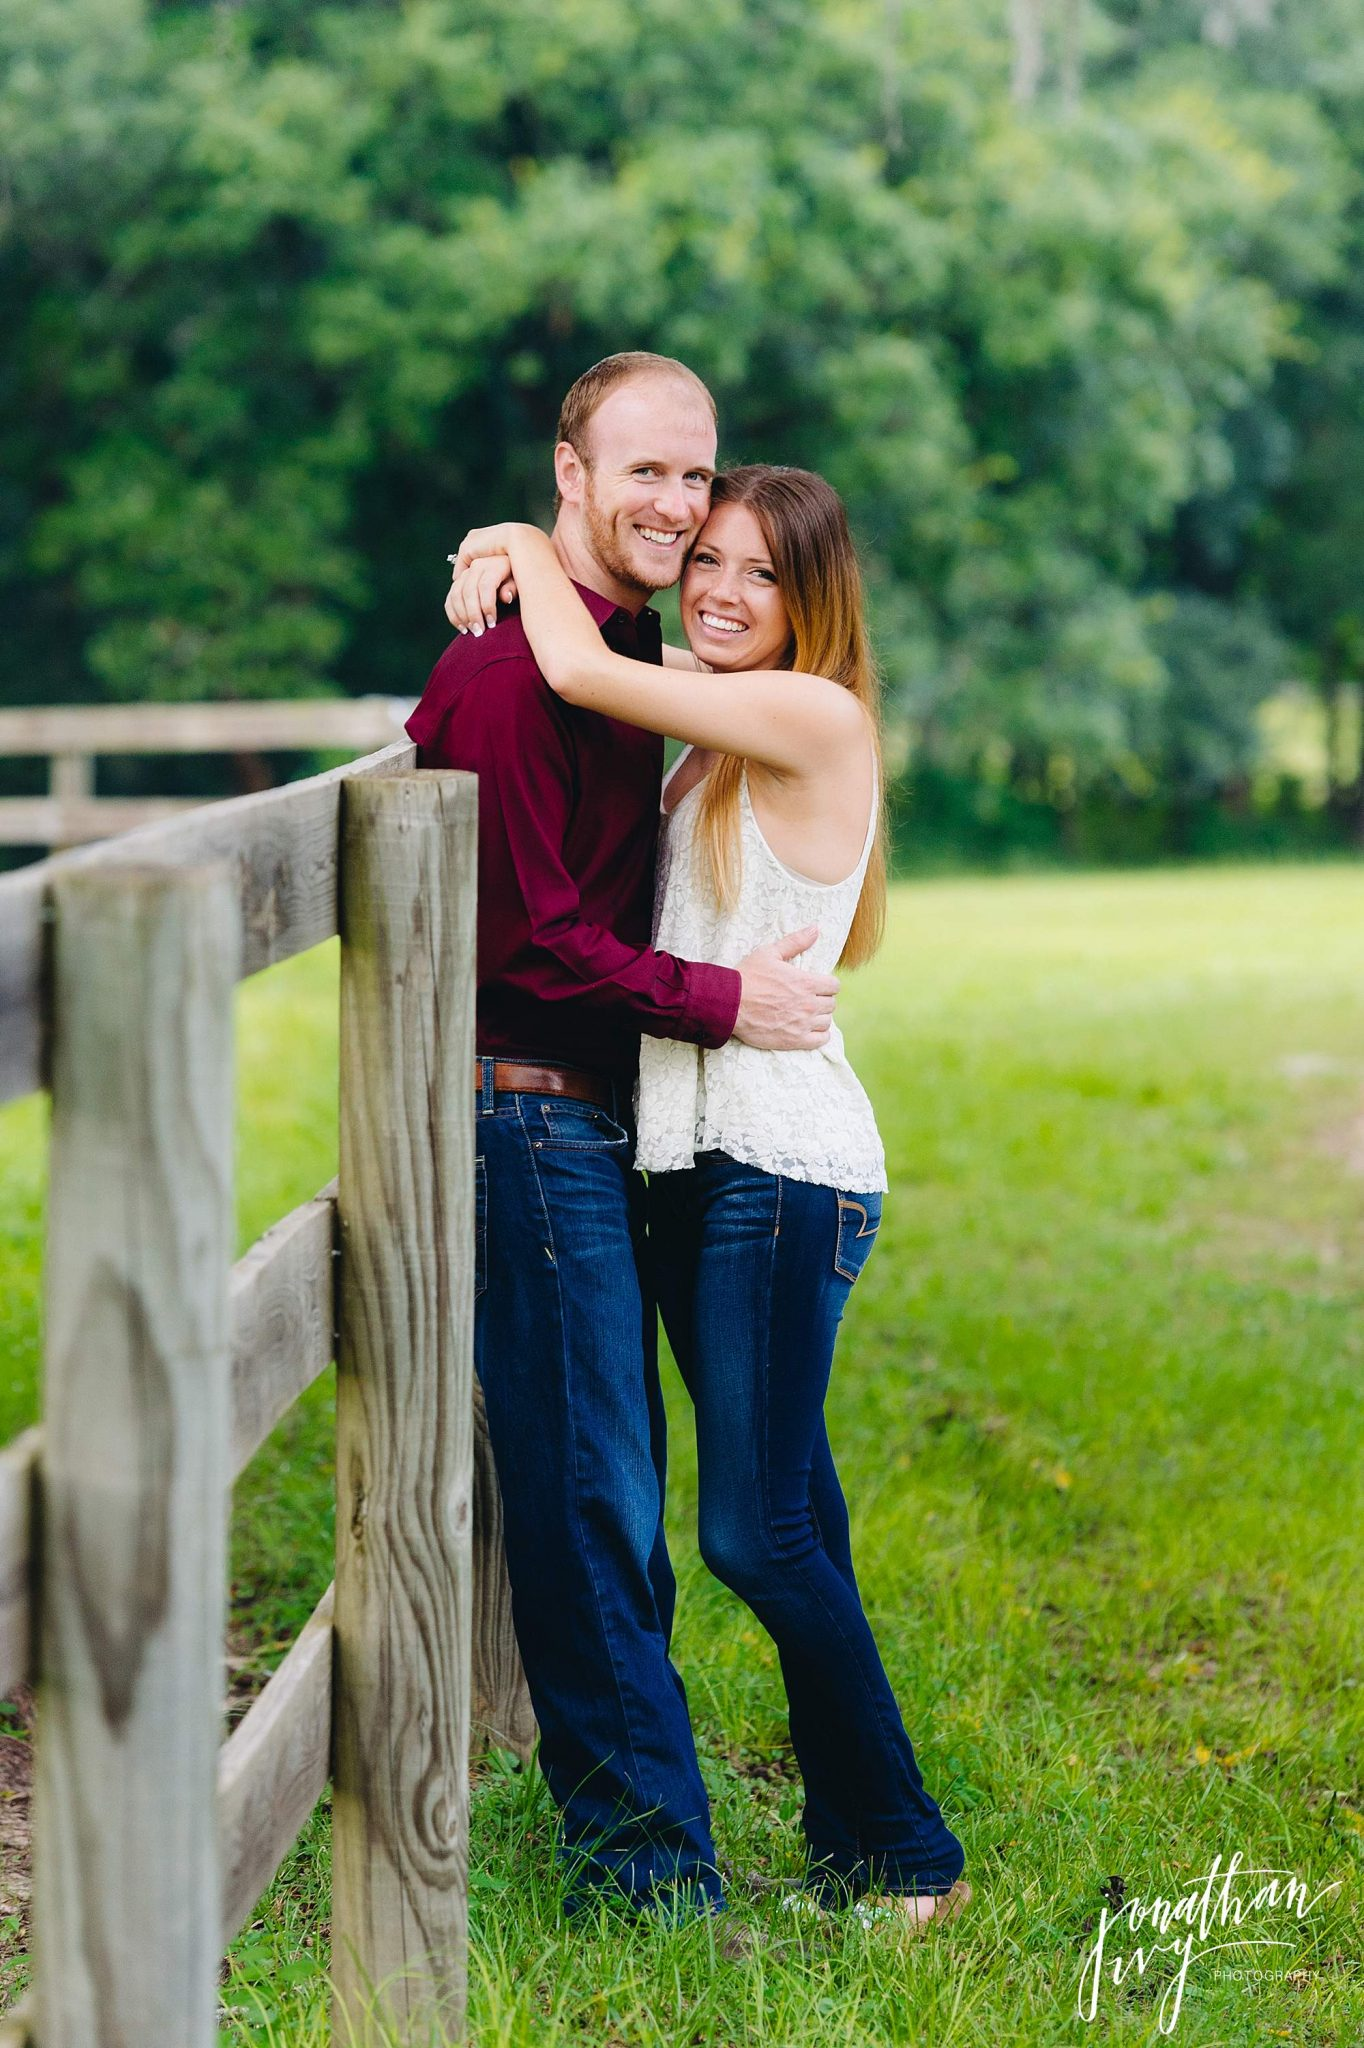 Country-rustic-engagement-photographer_0002.jpg